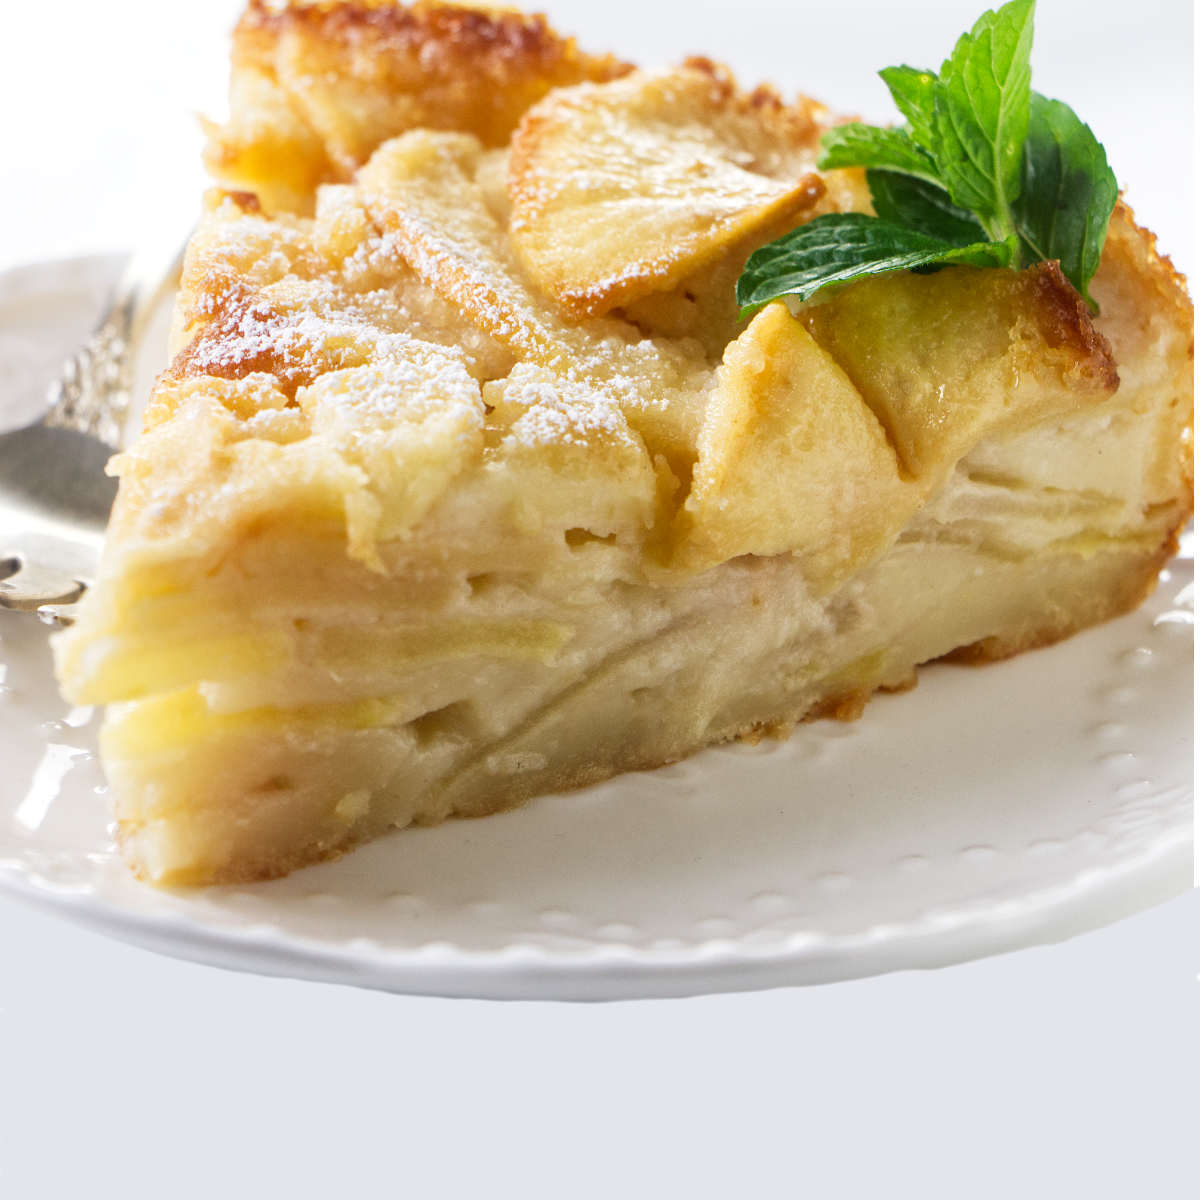 A slice of French apple cake on a dessert plate.